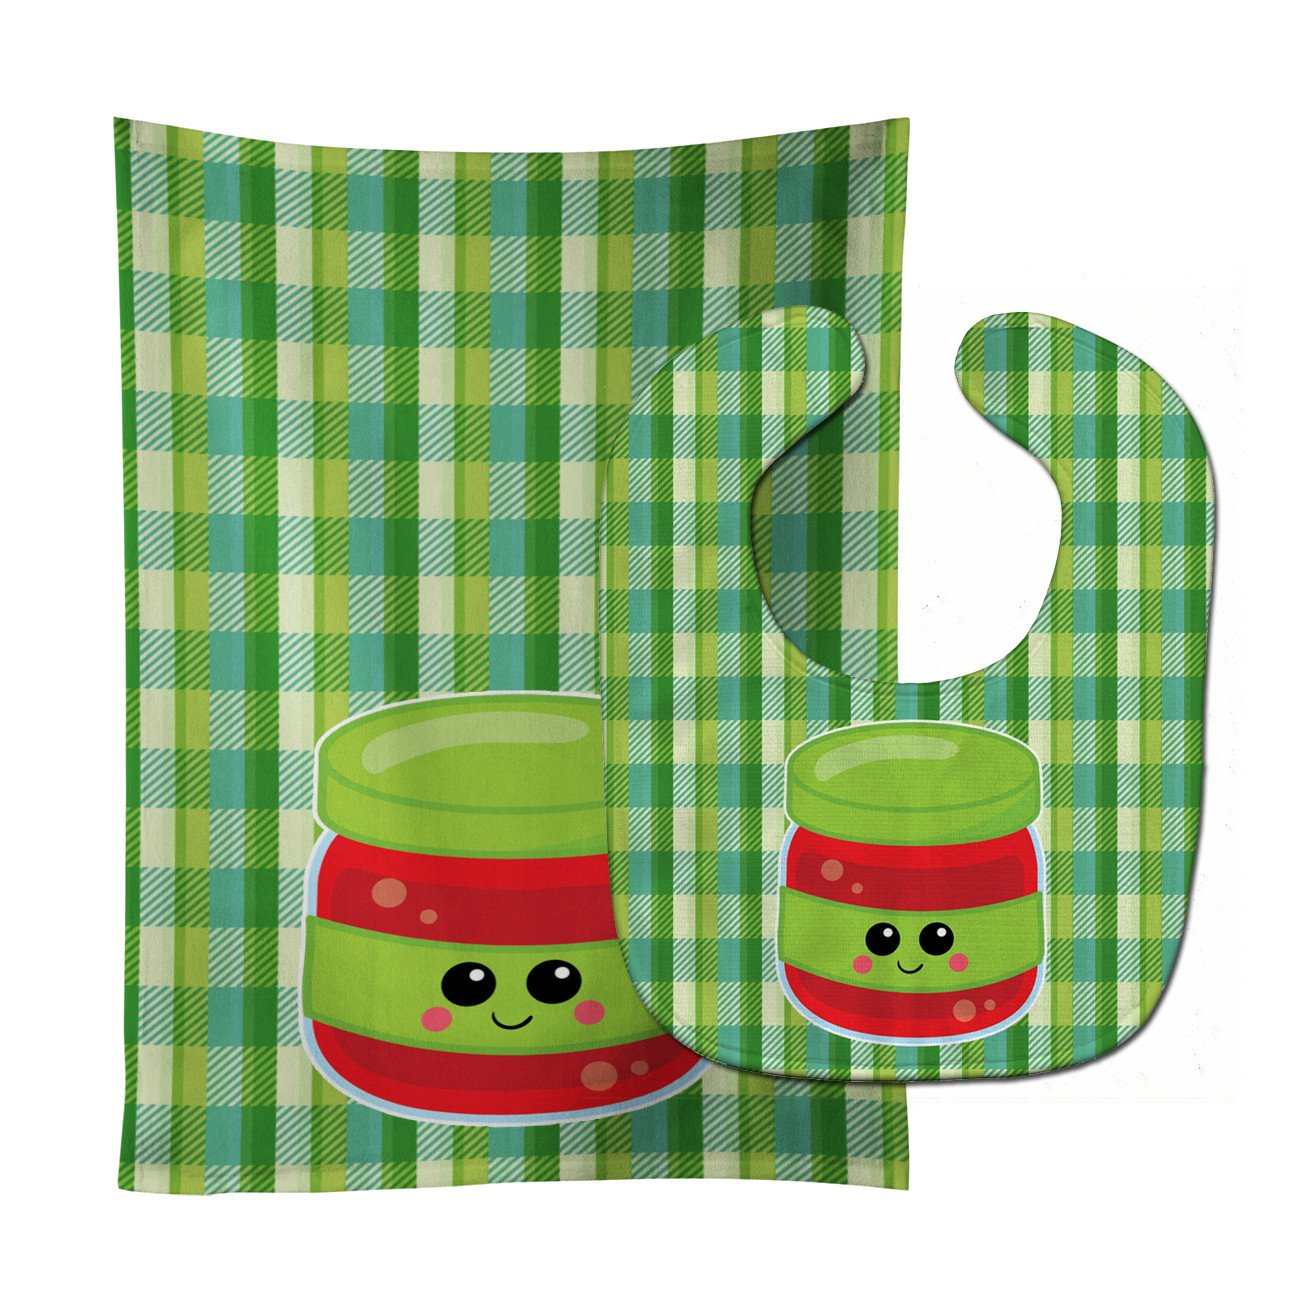 Jelly Jar Face Baby Bib & Burp Cloth BB7051STBU by Caroline's Treasures